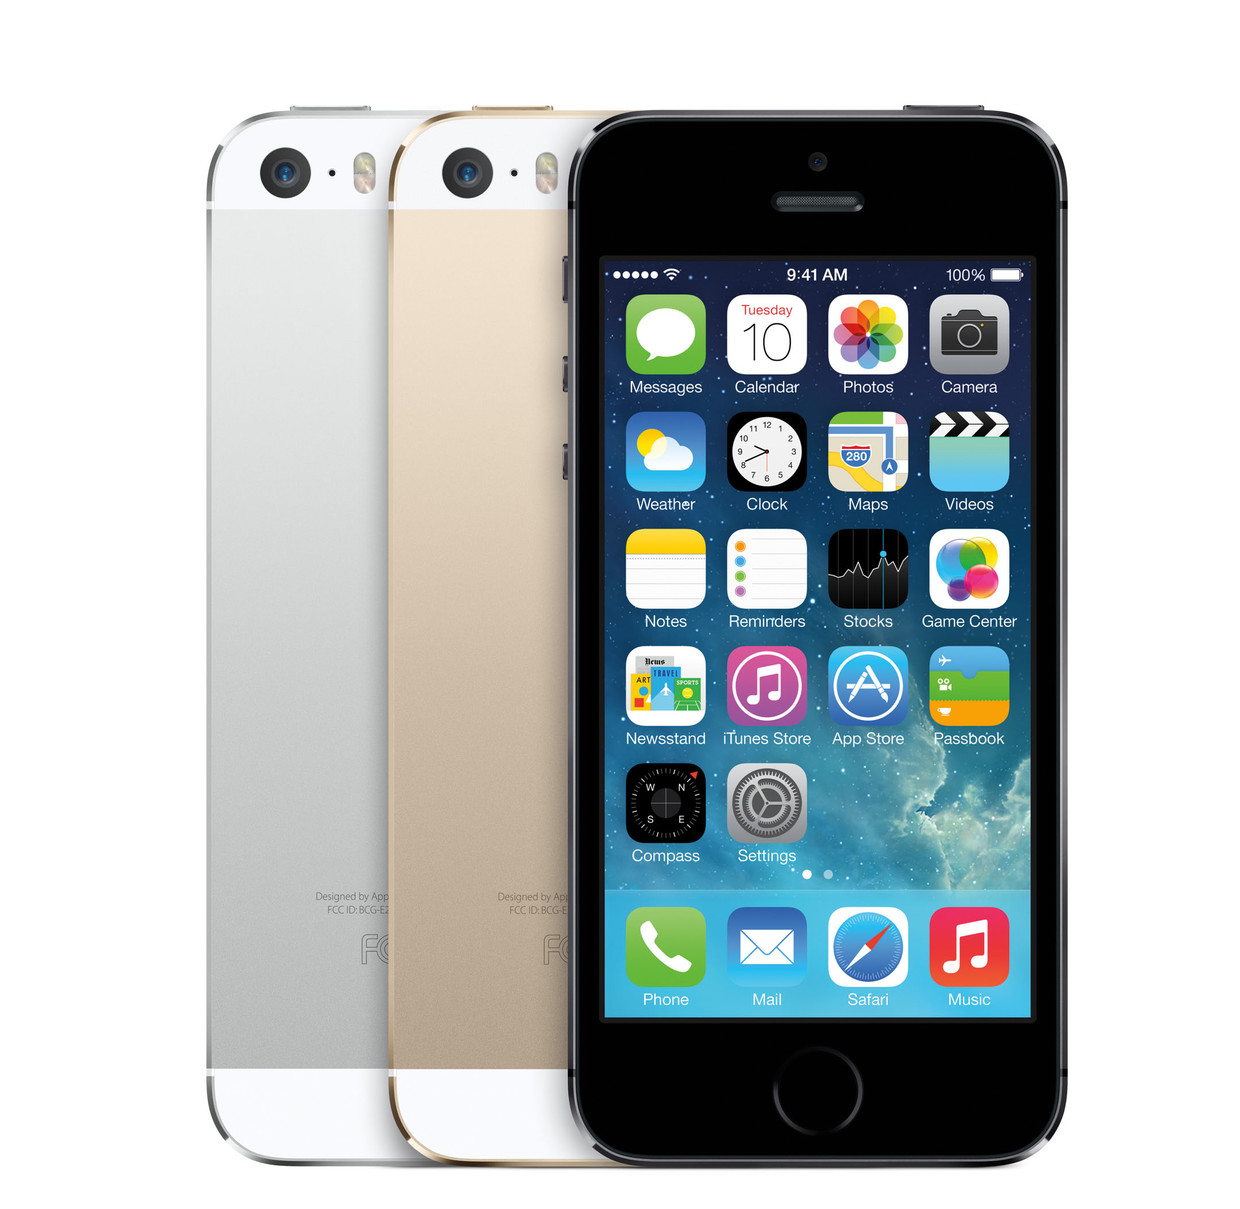 Apple's iPhone 5s Reveal Shows Us Where The Company Is Headed…And It Ain't Pretty